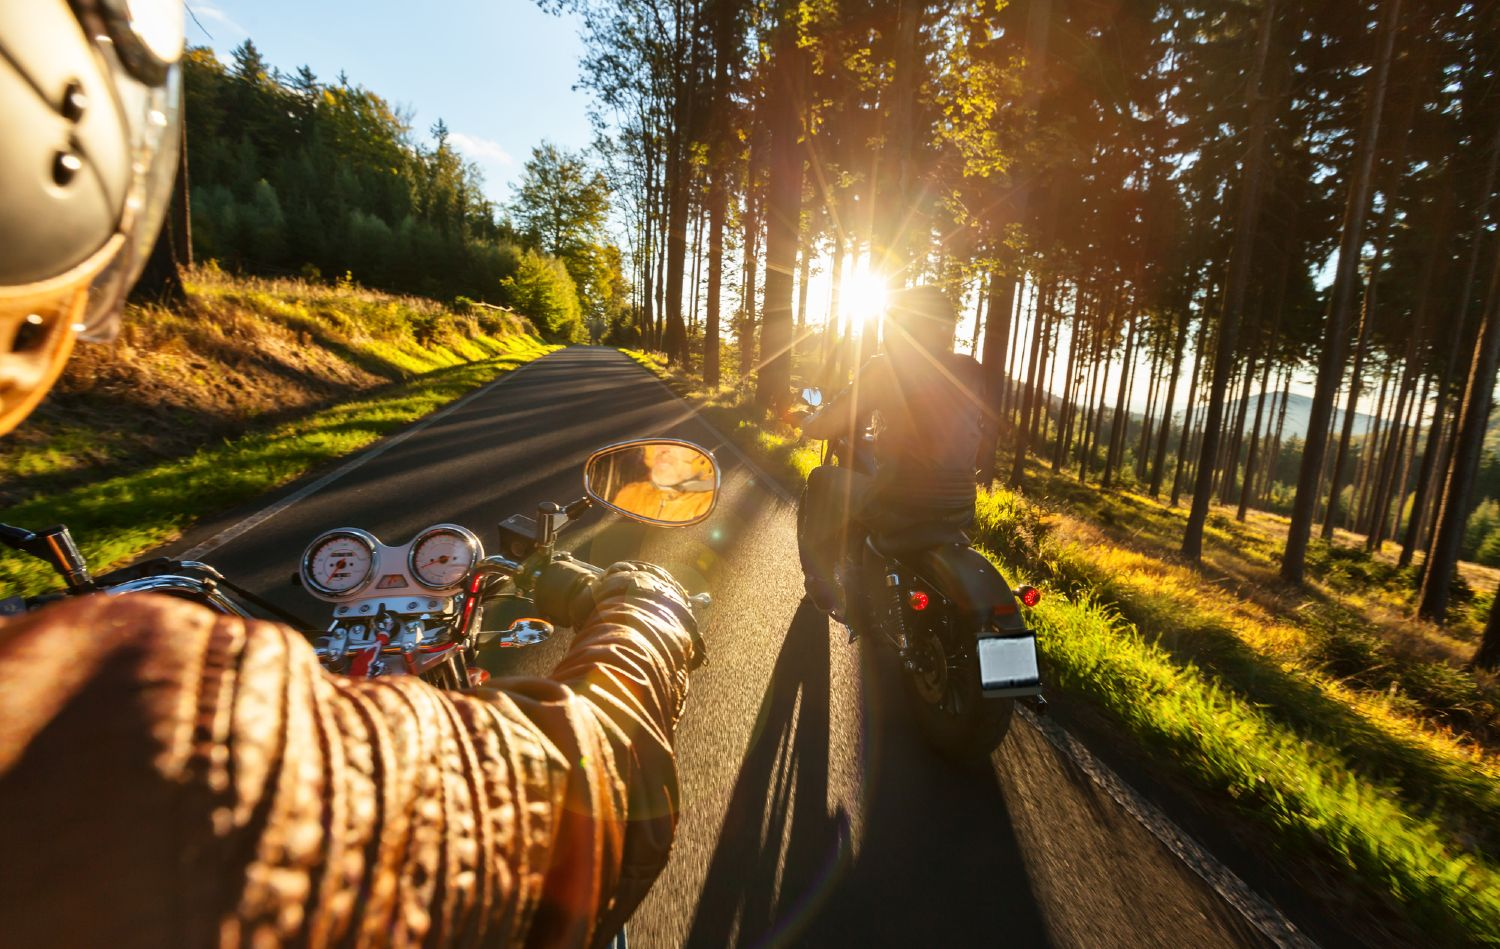 Motorcycle traveling towards the sunset